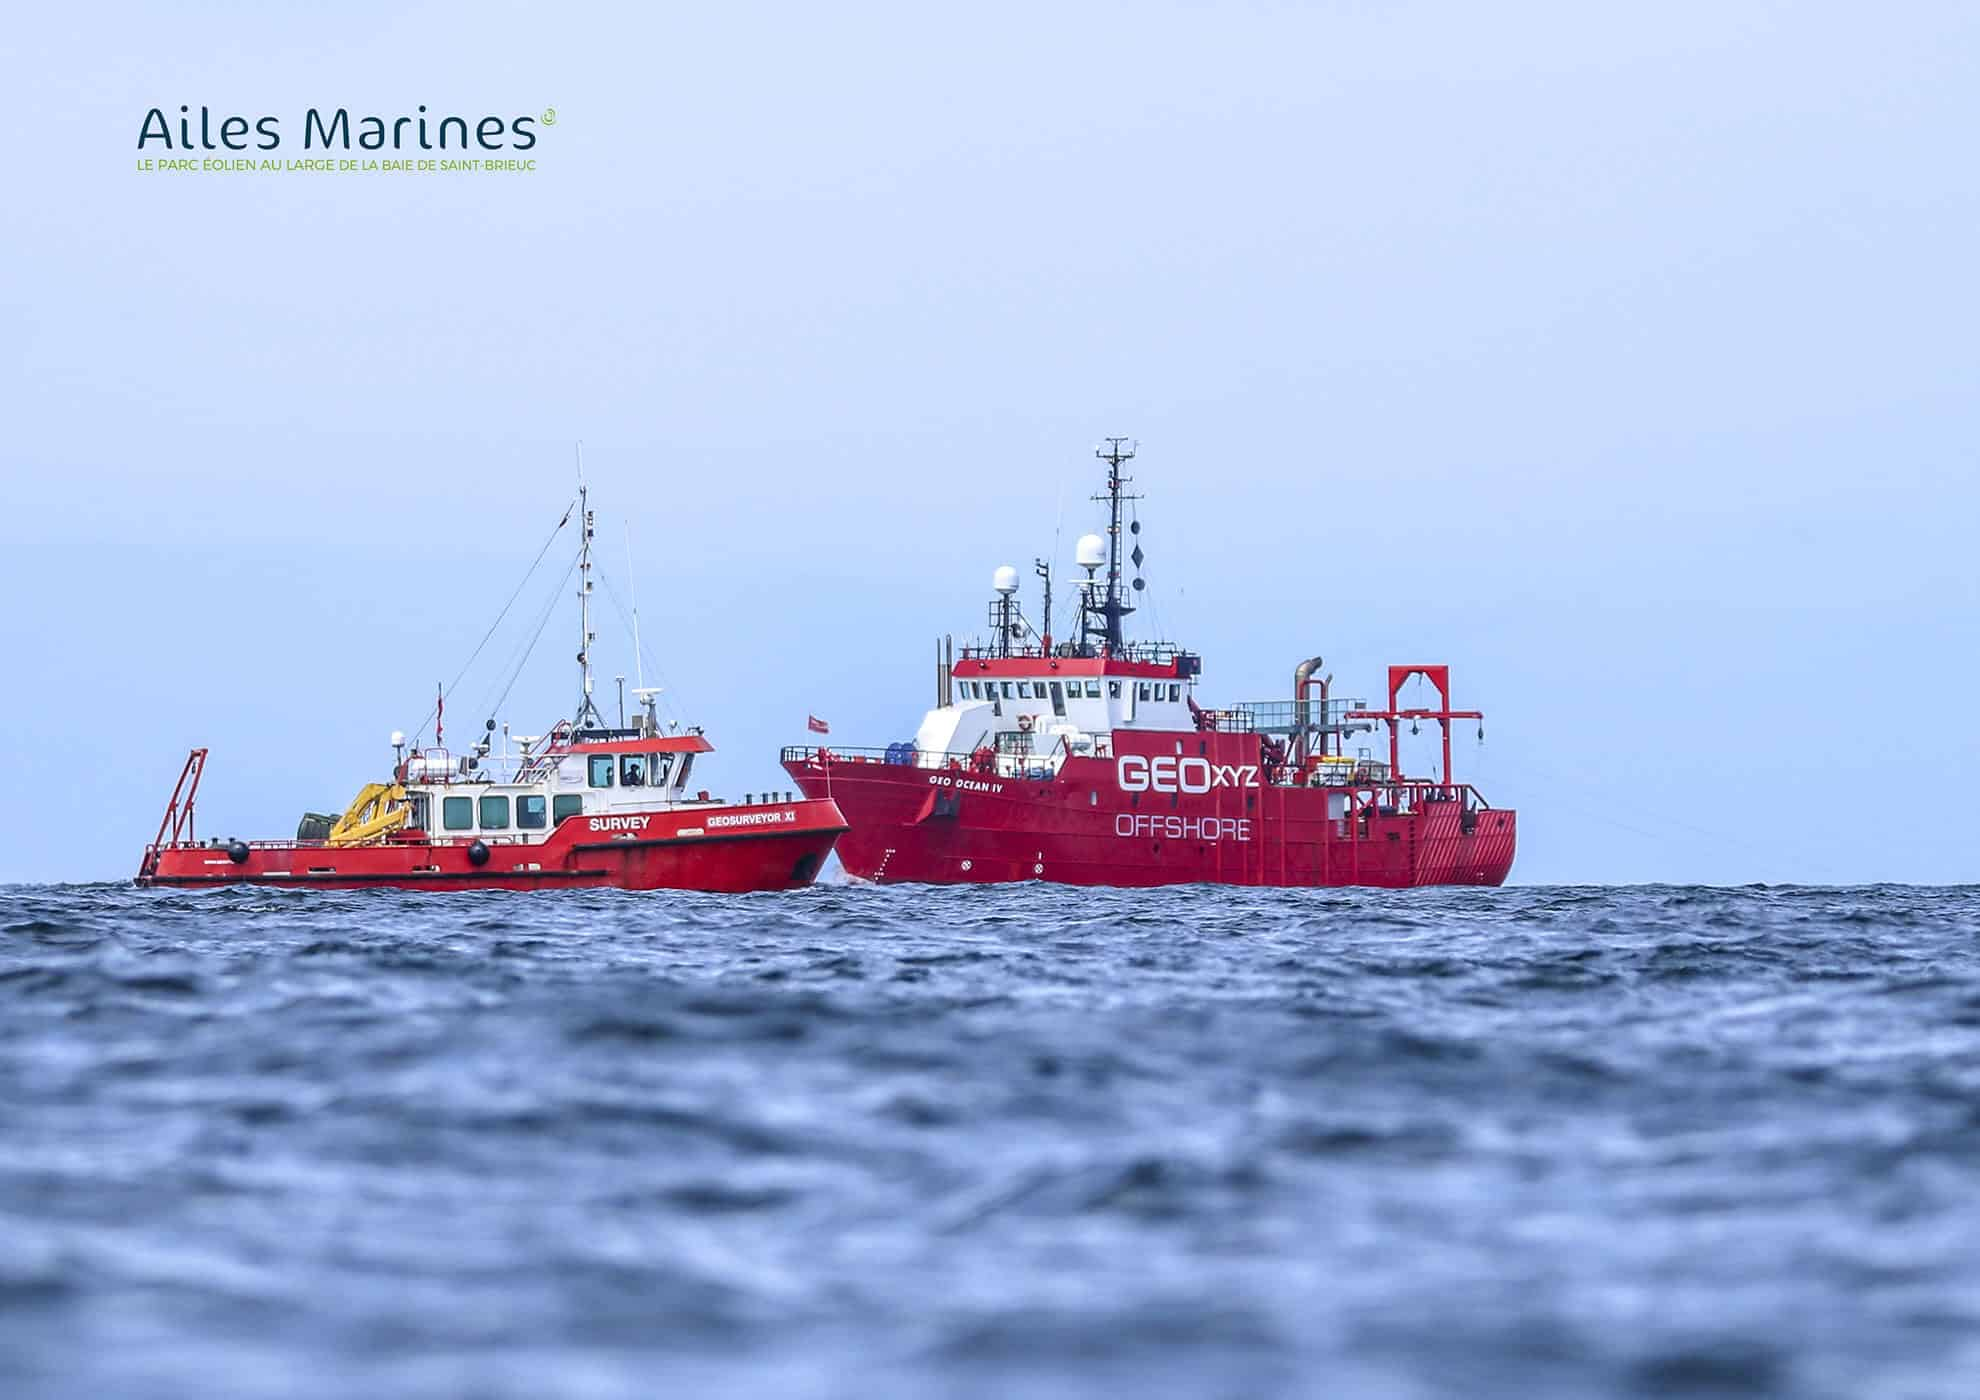 ailes-marines-two-boat-offshore